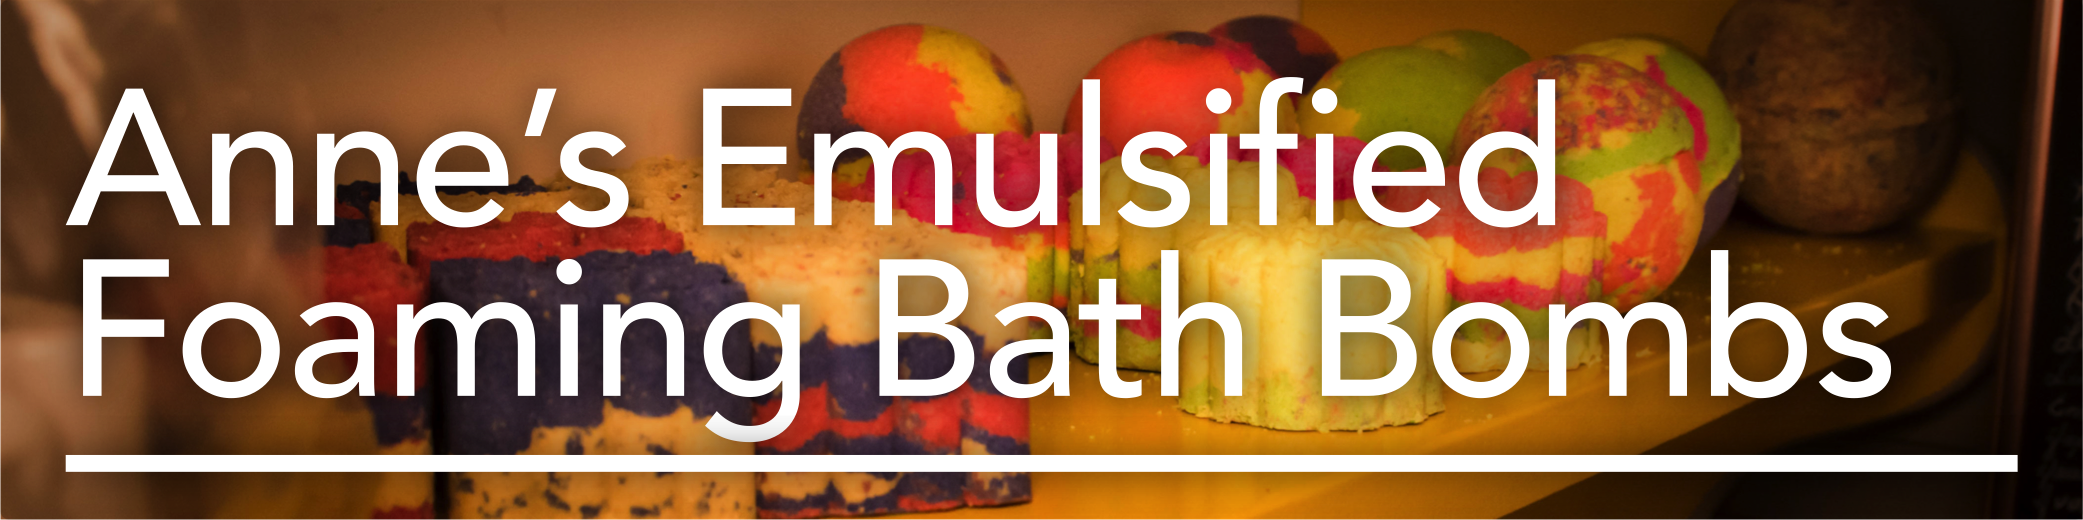 Bath-Bomb-Recipe-Banner-image -MakeYourOwn